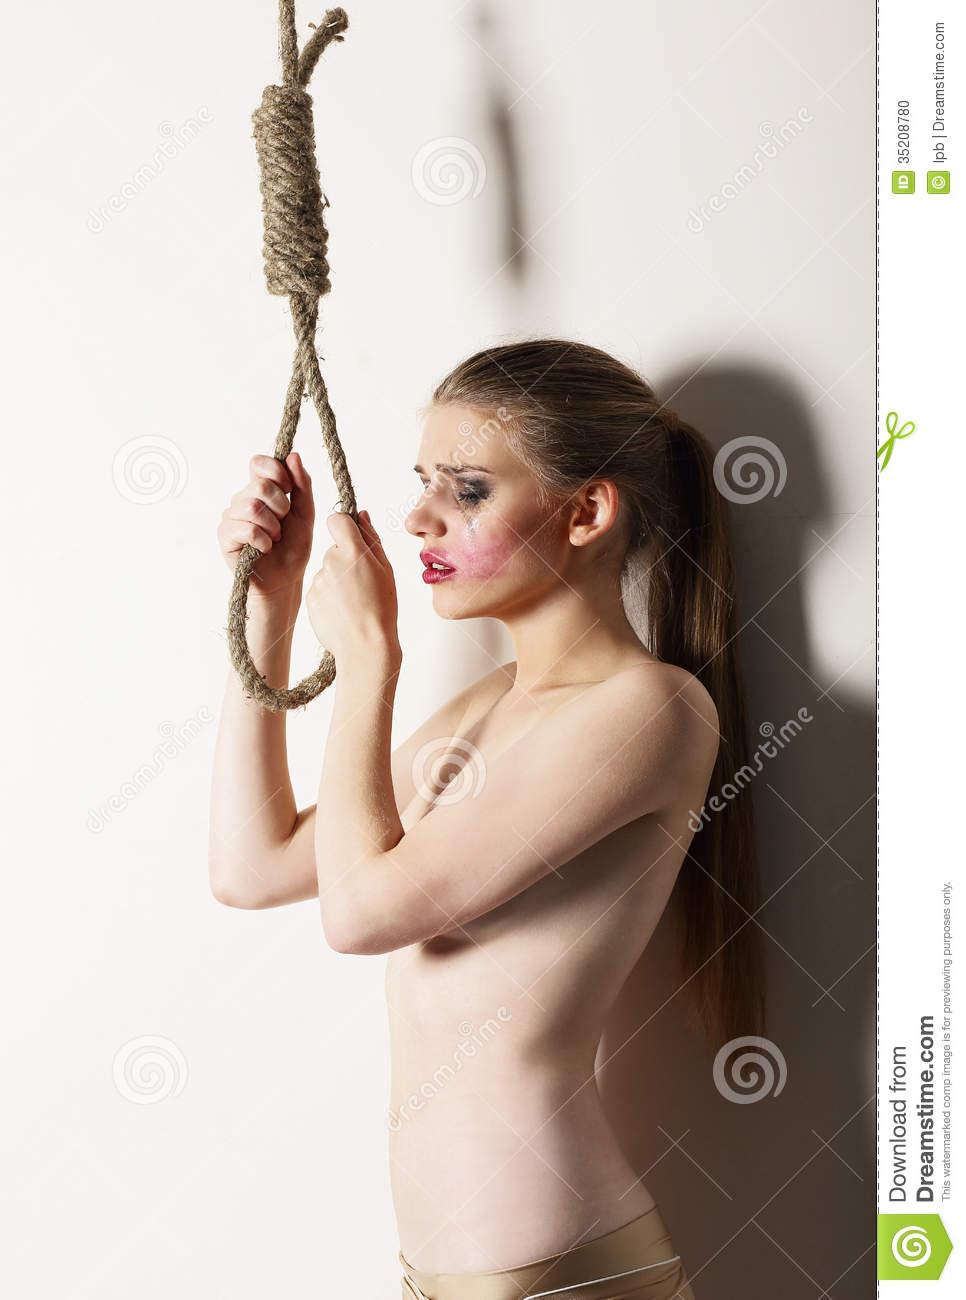 image A young woman desperate to keep her jewelry